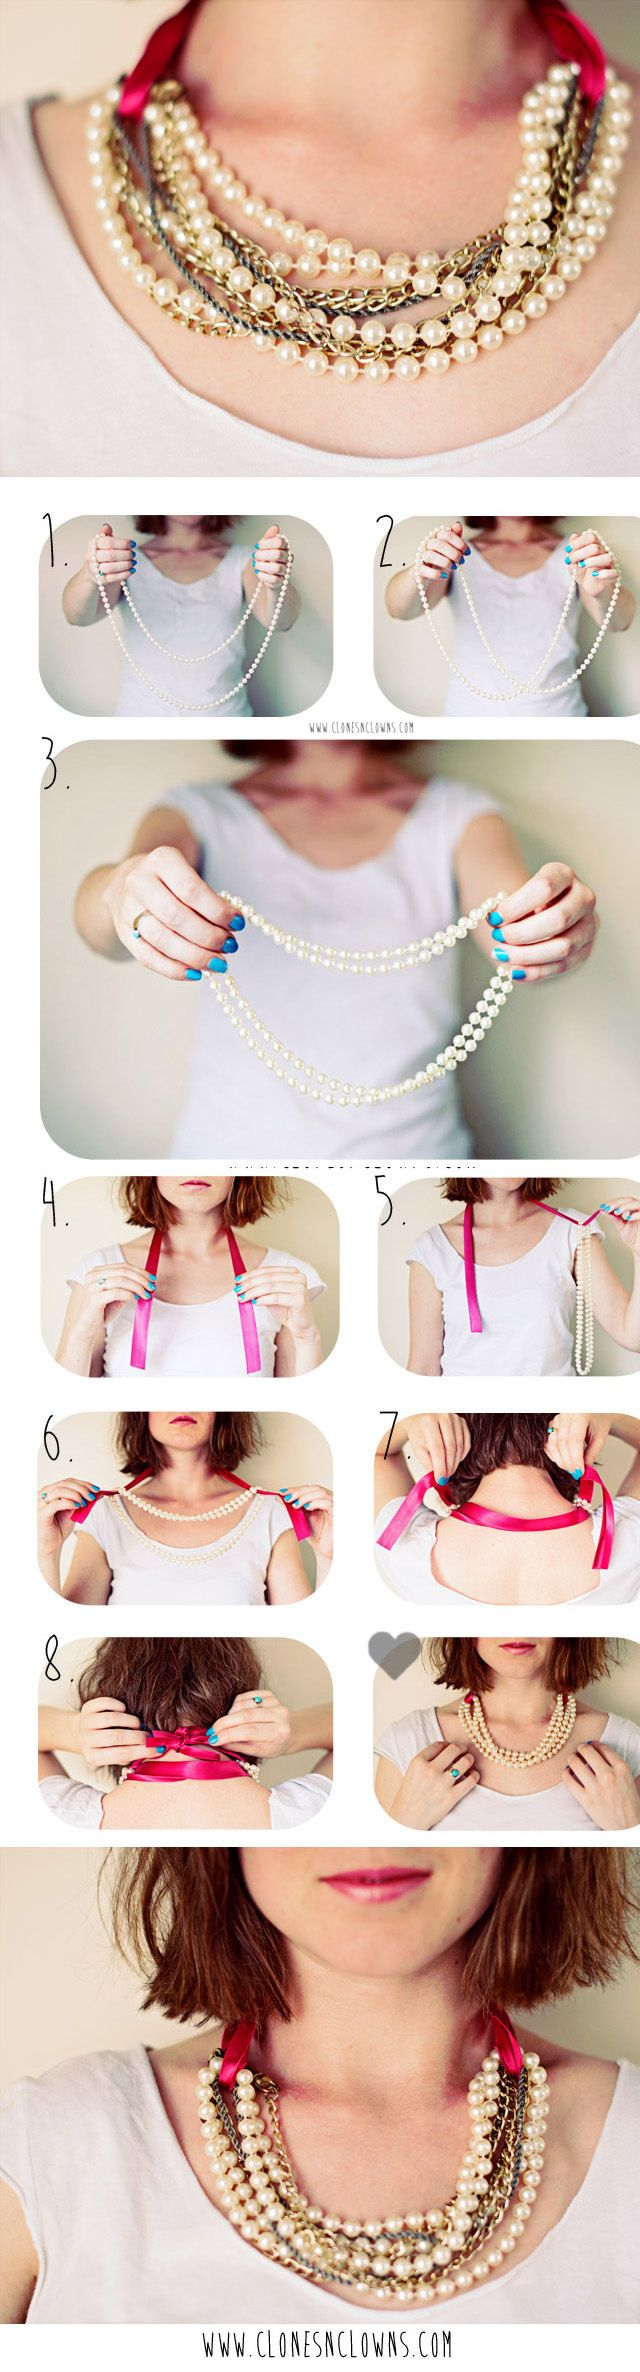 DIY Pearl Necklace In 3 Minutes Pictures, Photos, and Images for Facebook, Tumblr, Pinterest, and Twitter